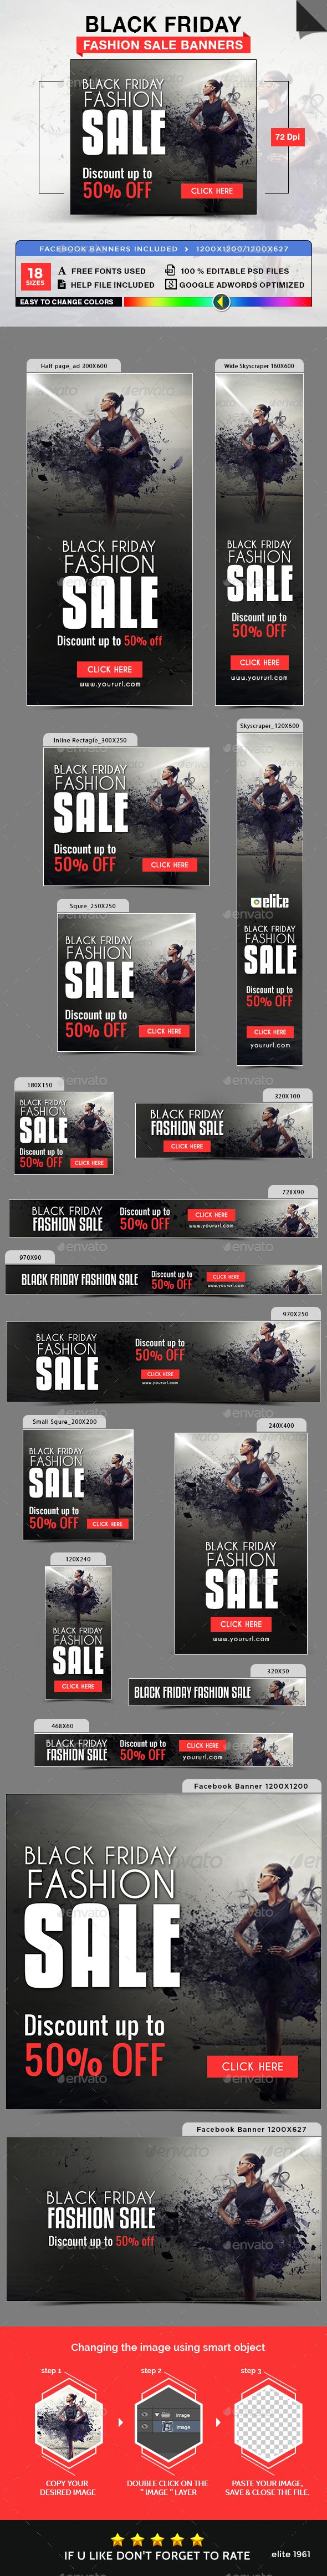 Black Friday Fashion Sale Banner Design Ads Template - Banners & Ads Web Elements Banner PSD Template. Download here: https://graphicriver.net/item/black-friday-fashion-sale-banners/18711835?ref=yinkira